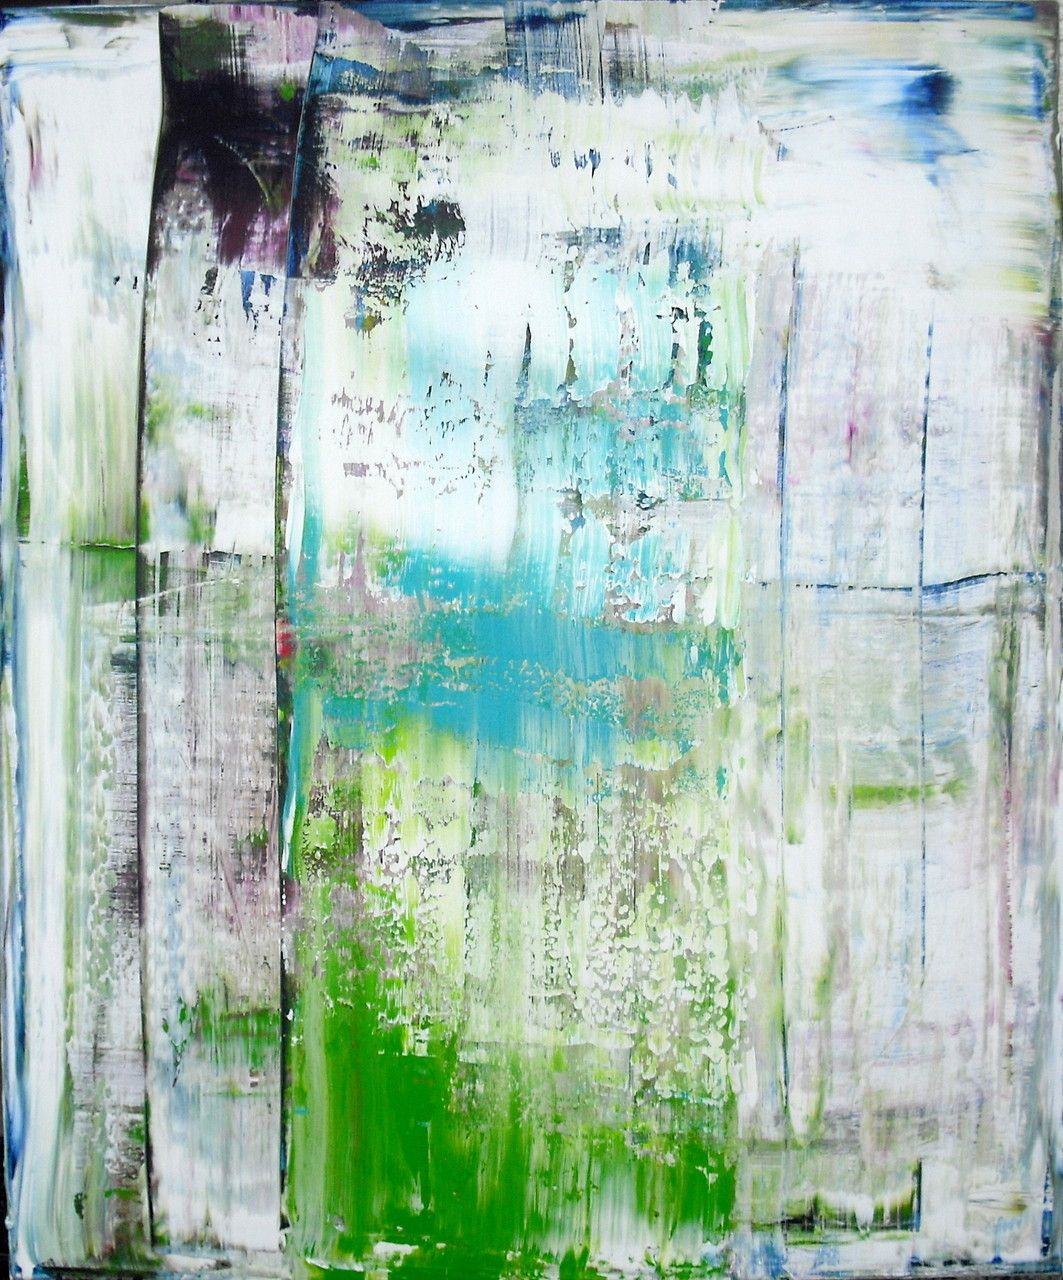 'Frühlingserwachen' (Acrylic on Canvas, 120x100cm) by Tepe Kraus #art #abstract #painting #squeegee